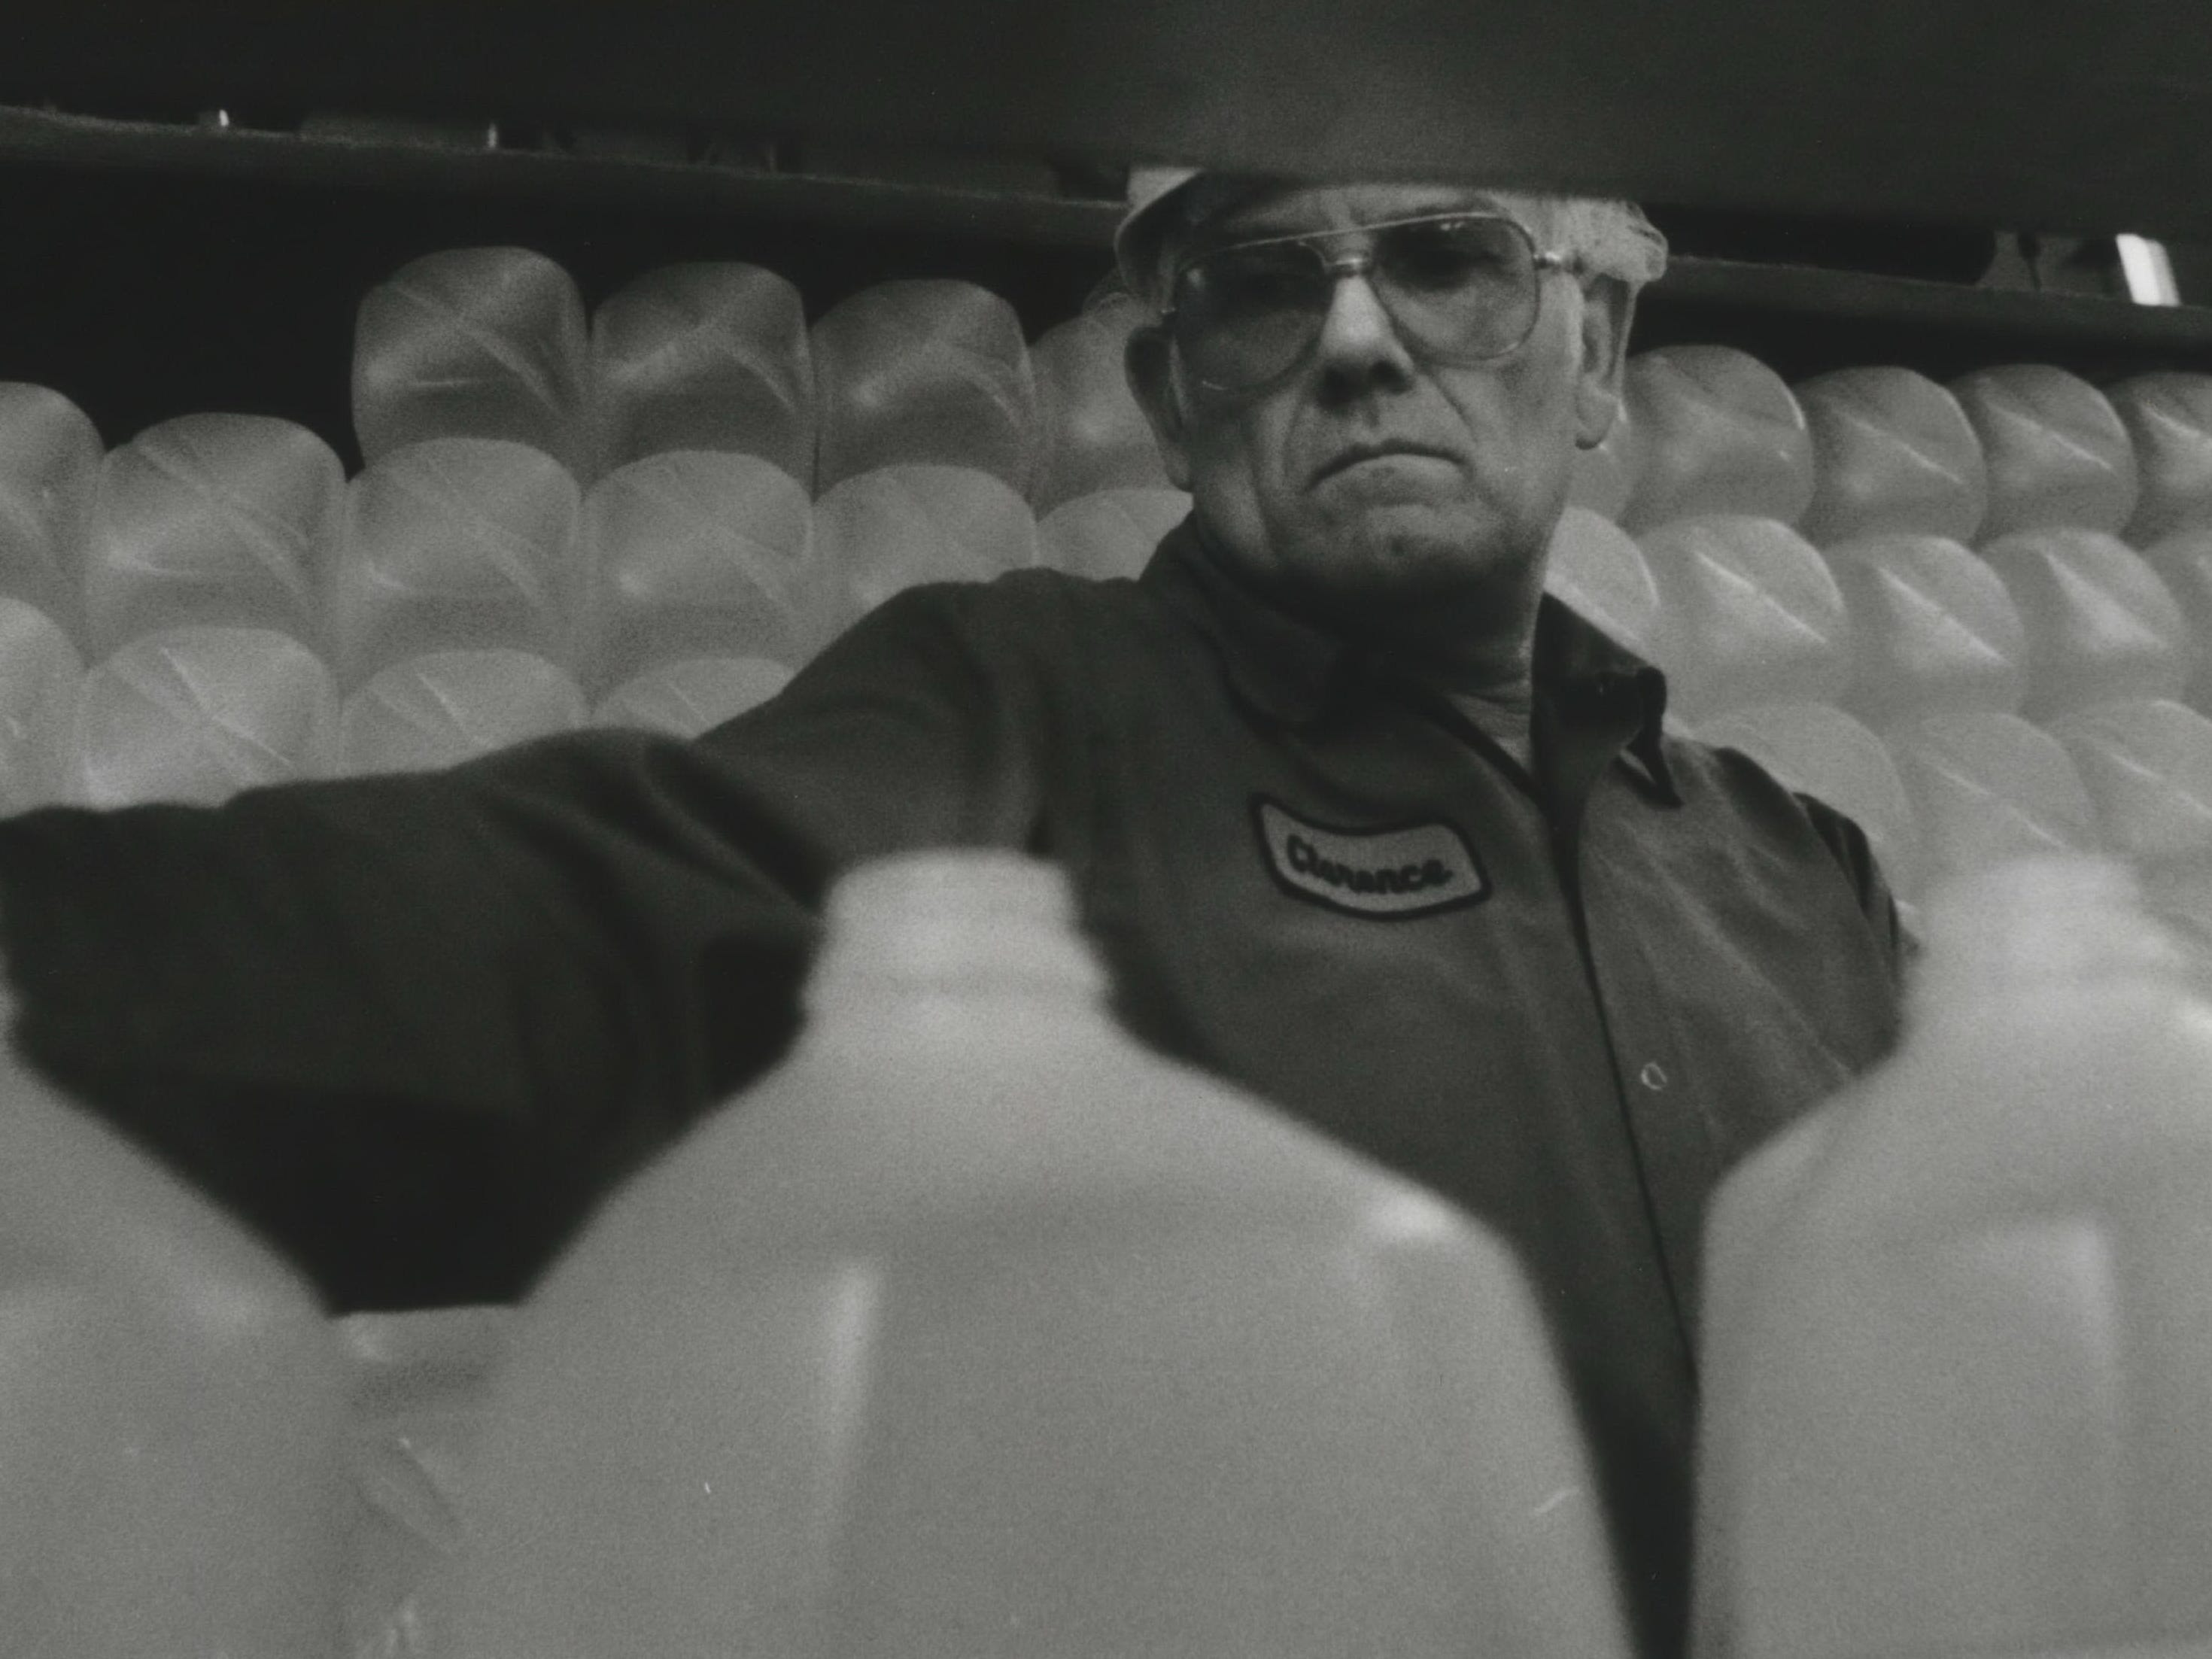 Clarence Gerbig plucks plastic bottles off a conveyor belt at Golden Guernsey Dairy in Waukesha. The dairy manufactures gallon and half-gallon bottles. Excess bottles are picked up by Kohl's Foods Stores and Pick n' Save Stores for customers to use when they buy water.